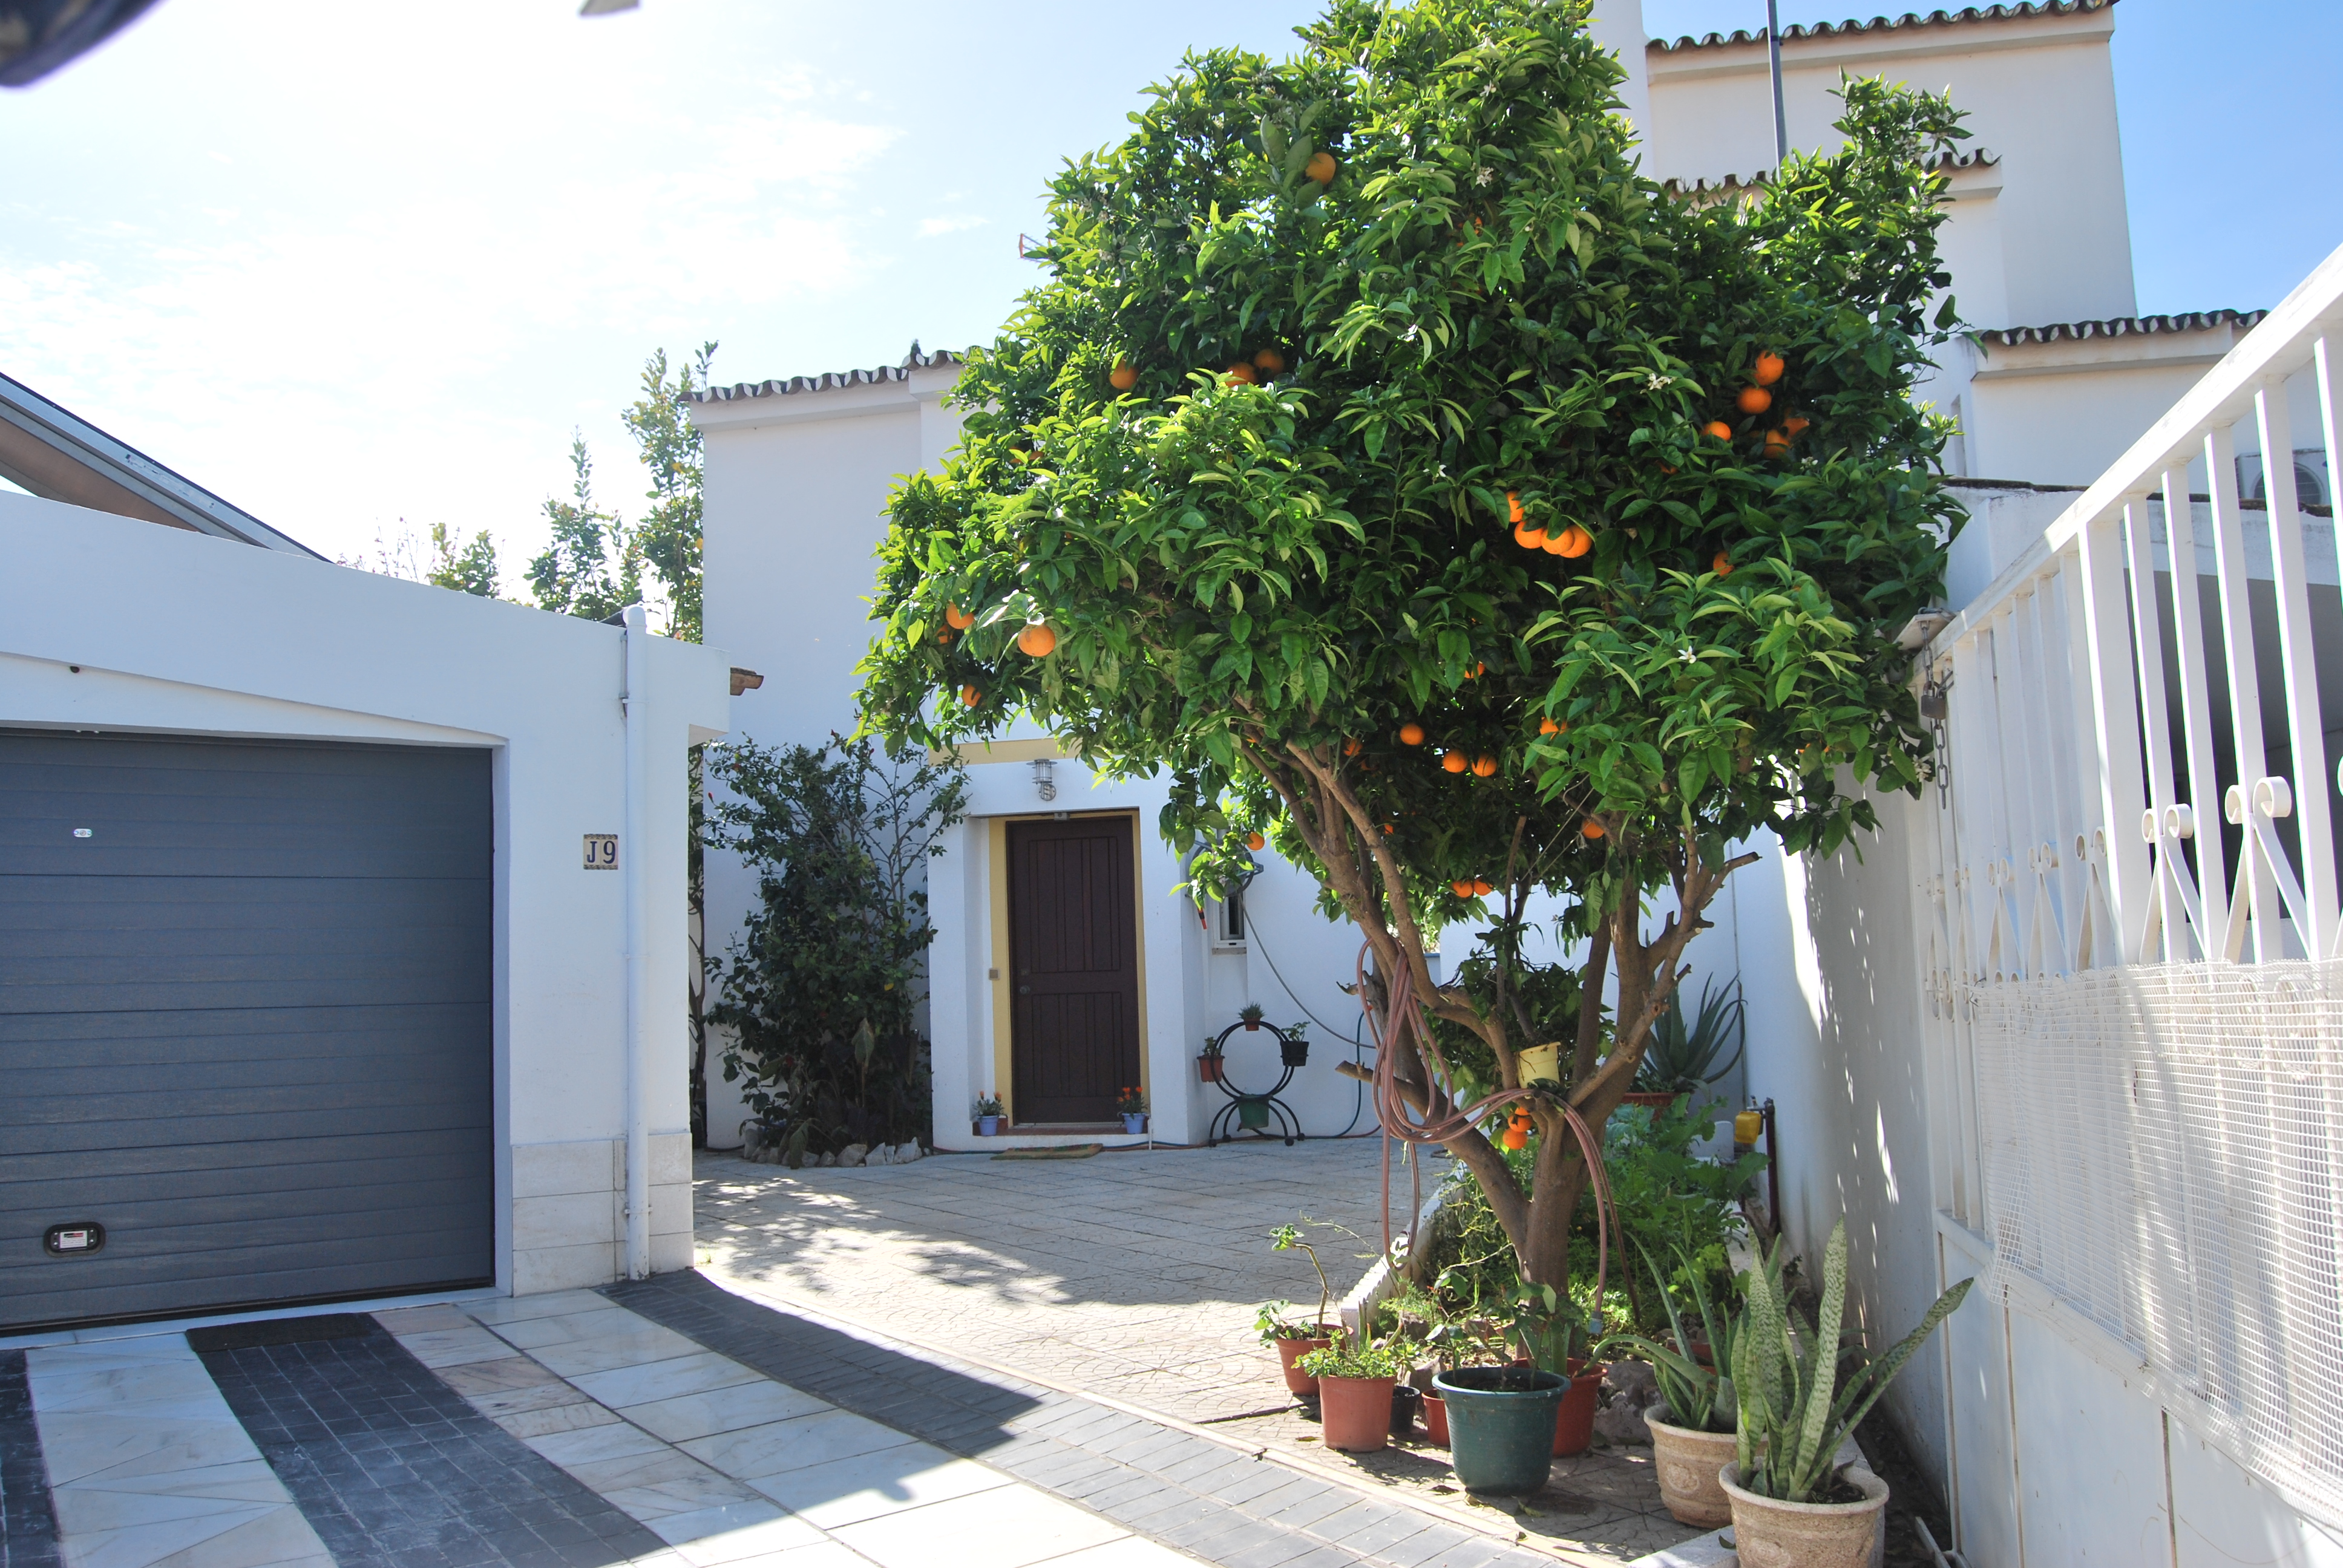 Holiday house for 6 persons  + 2 children approx. 200 m² in Quarteira, Algarve (Western Algarve)